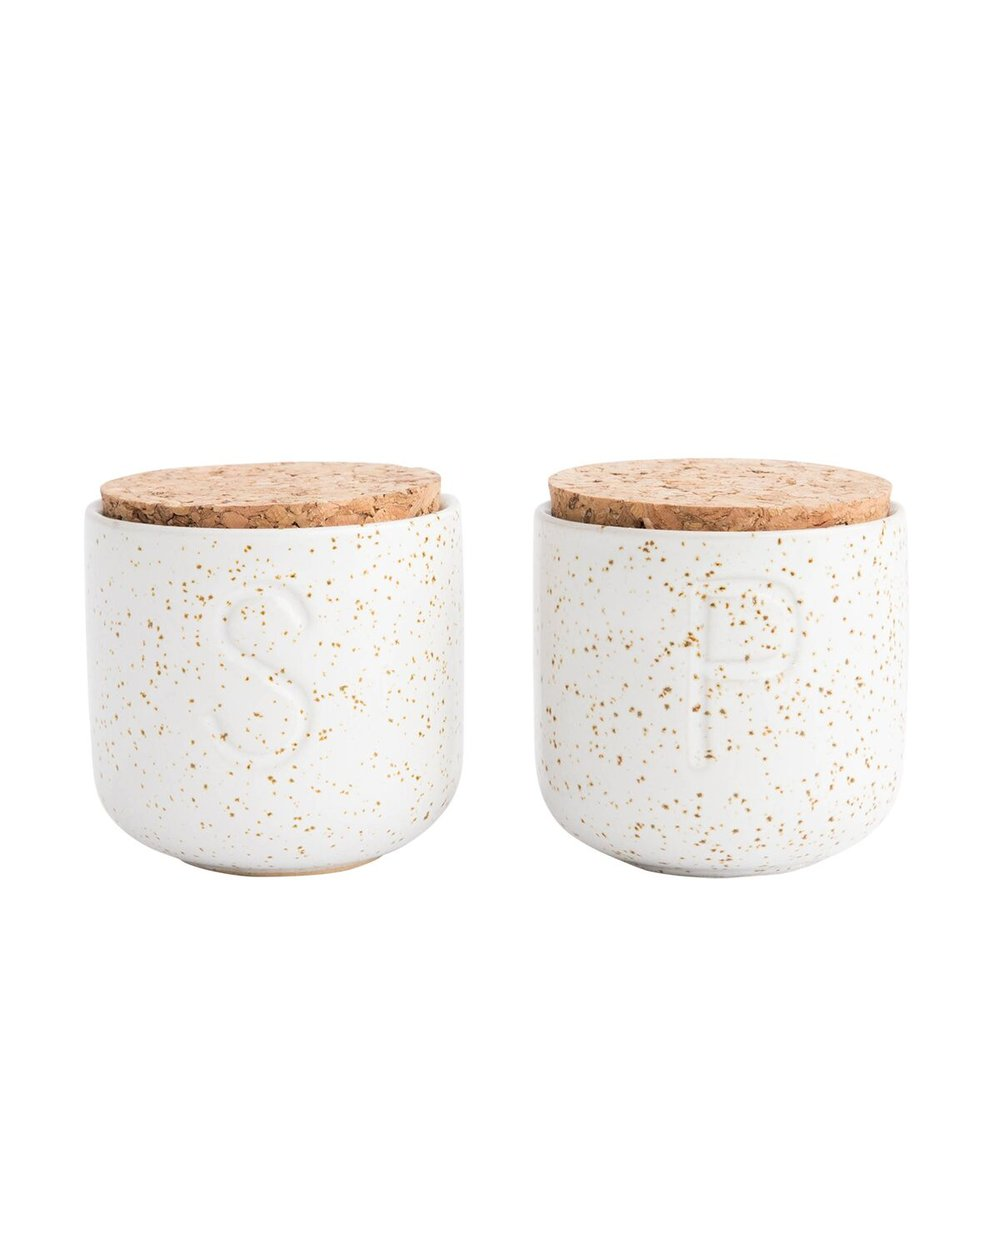 Speckled Salt & Pepper Cellar Set 1_preview.jpg